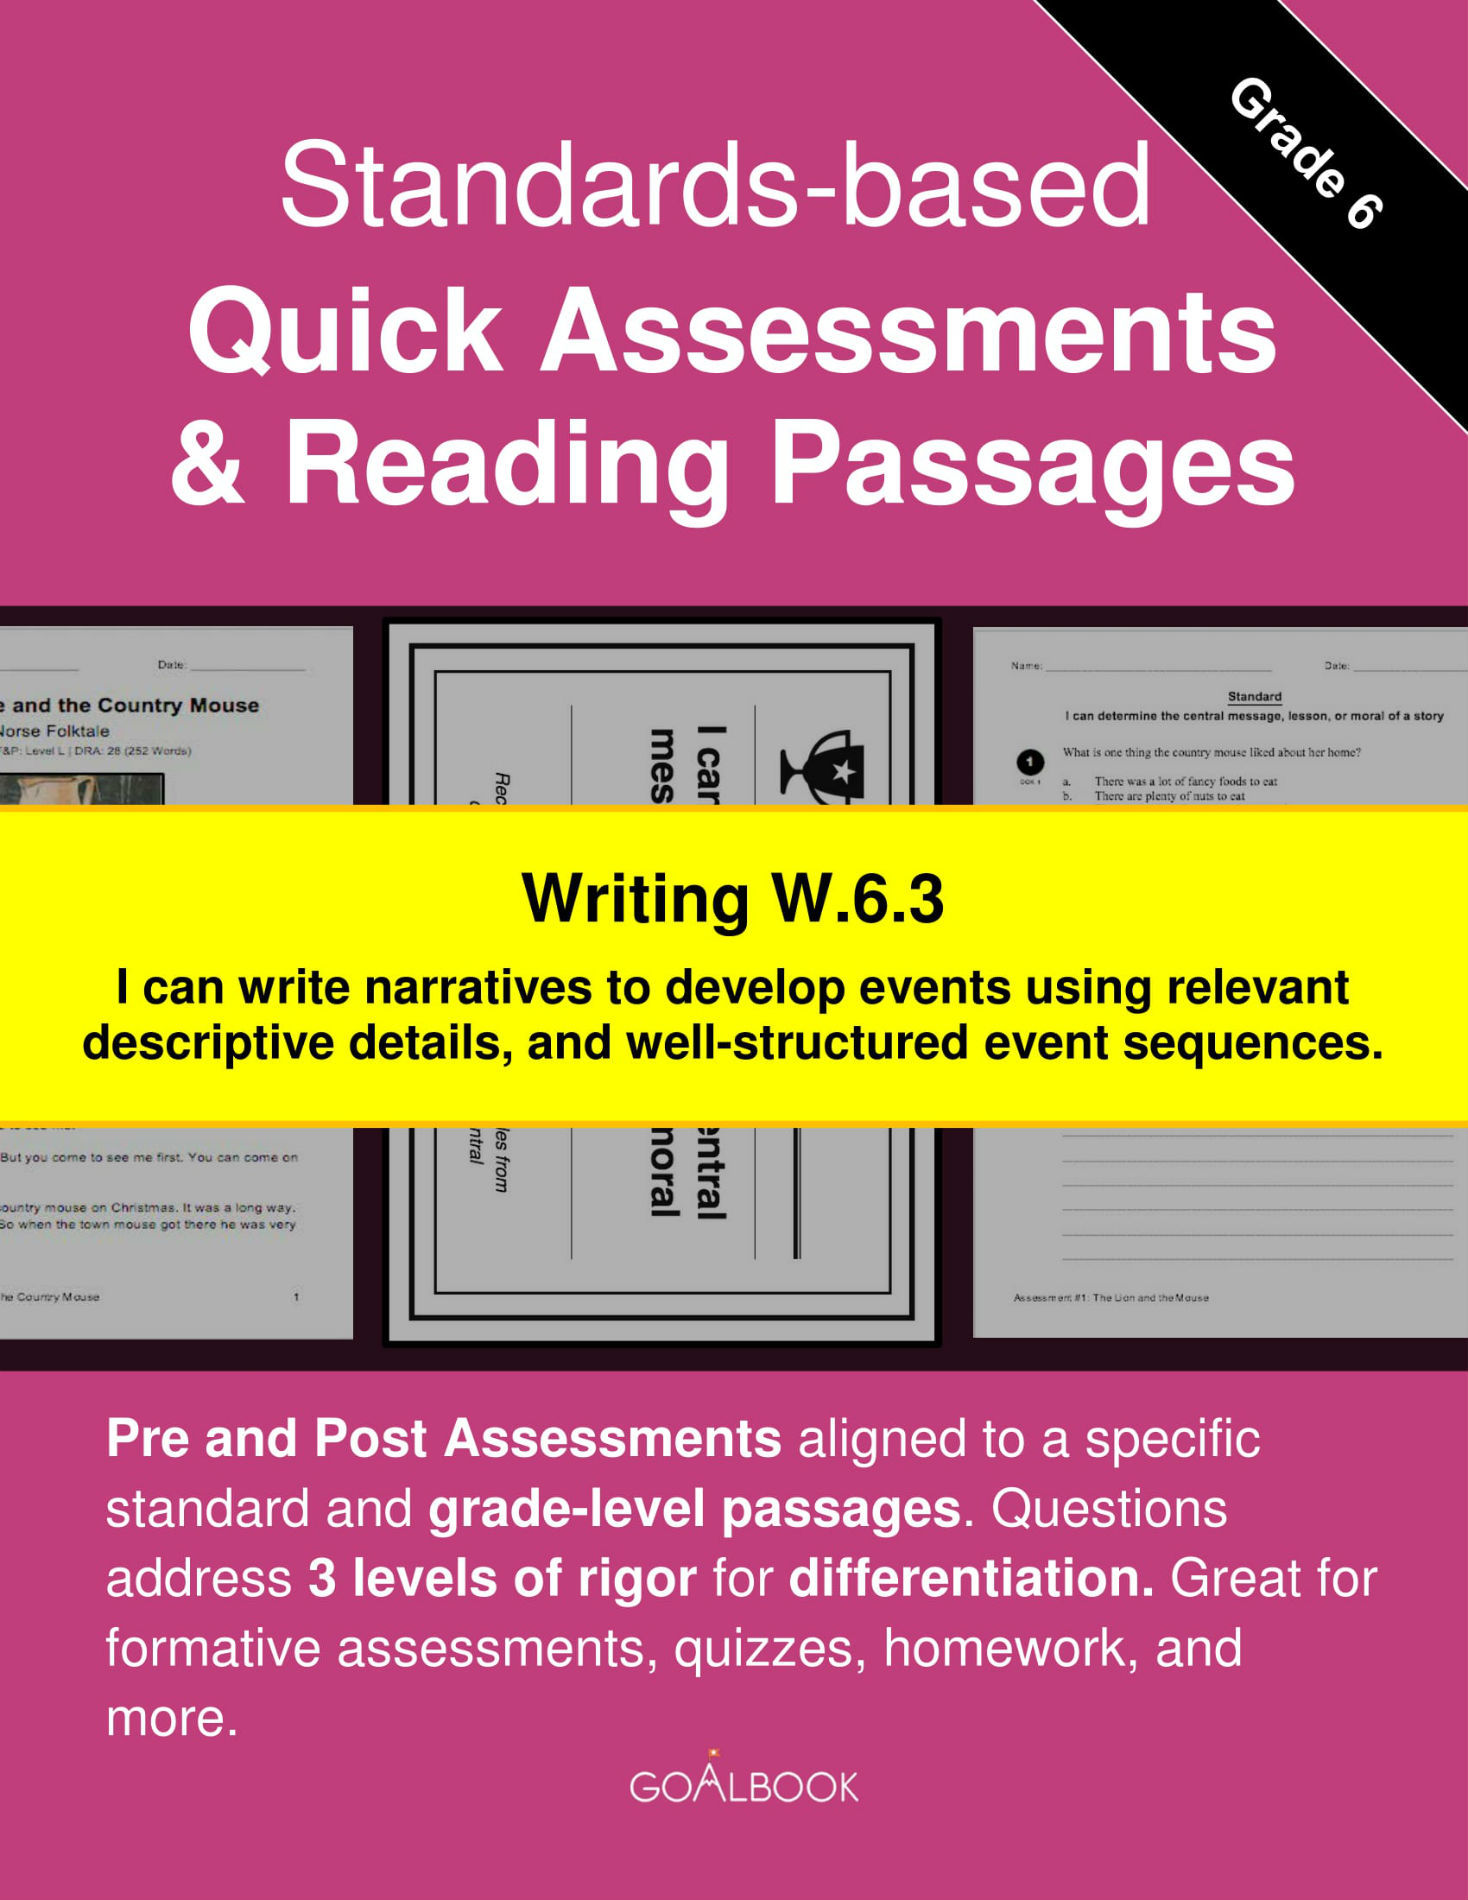 assessing writing Assessing writing is a quarterly peer-reviewed academic journal covering the assessment of written language in language education it was established in 1994 and is.